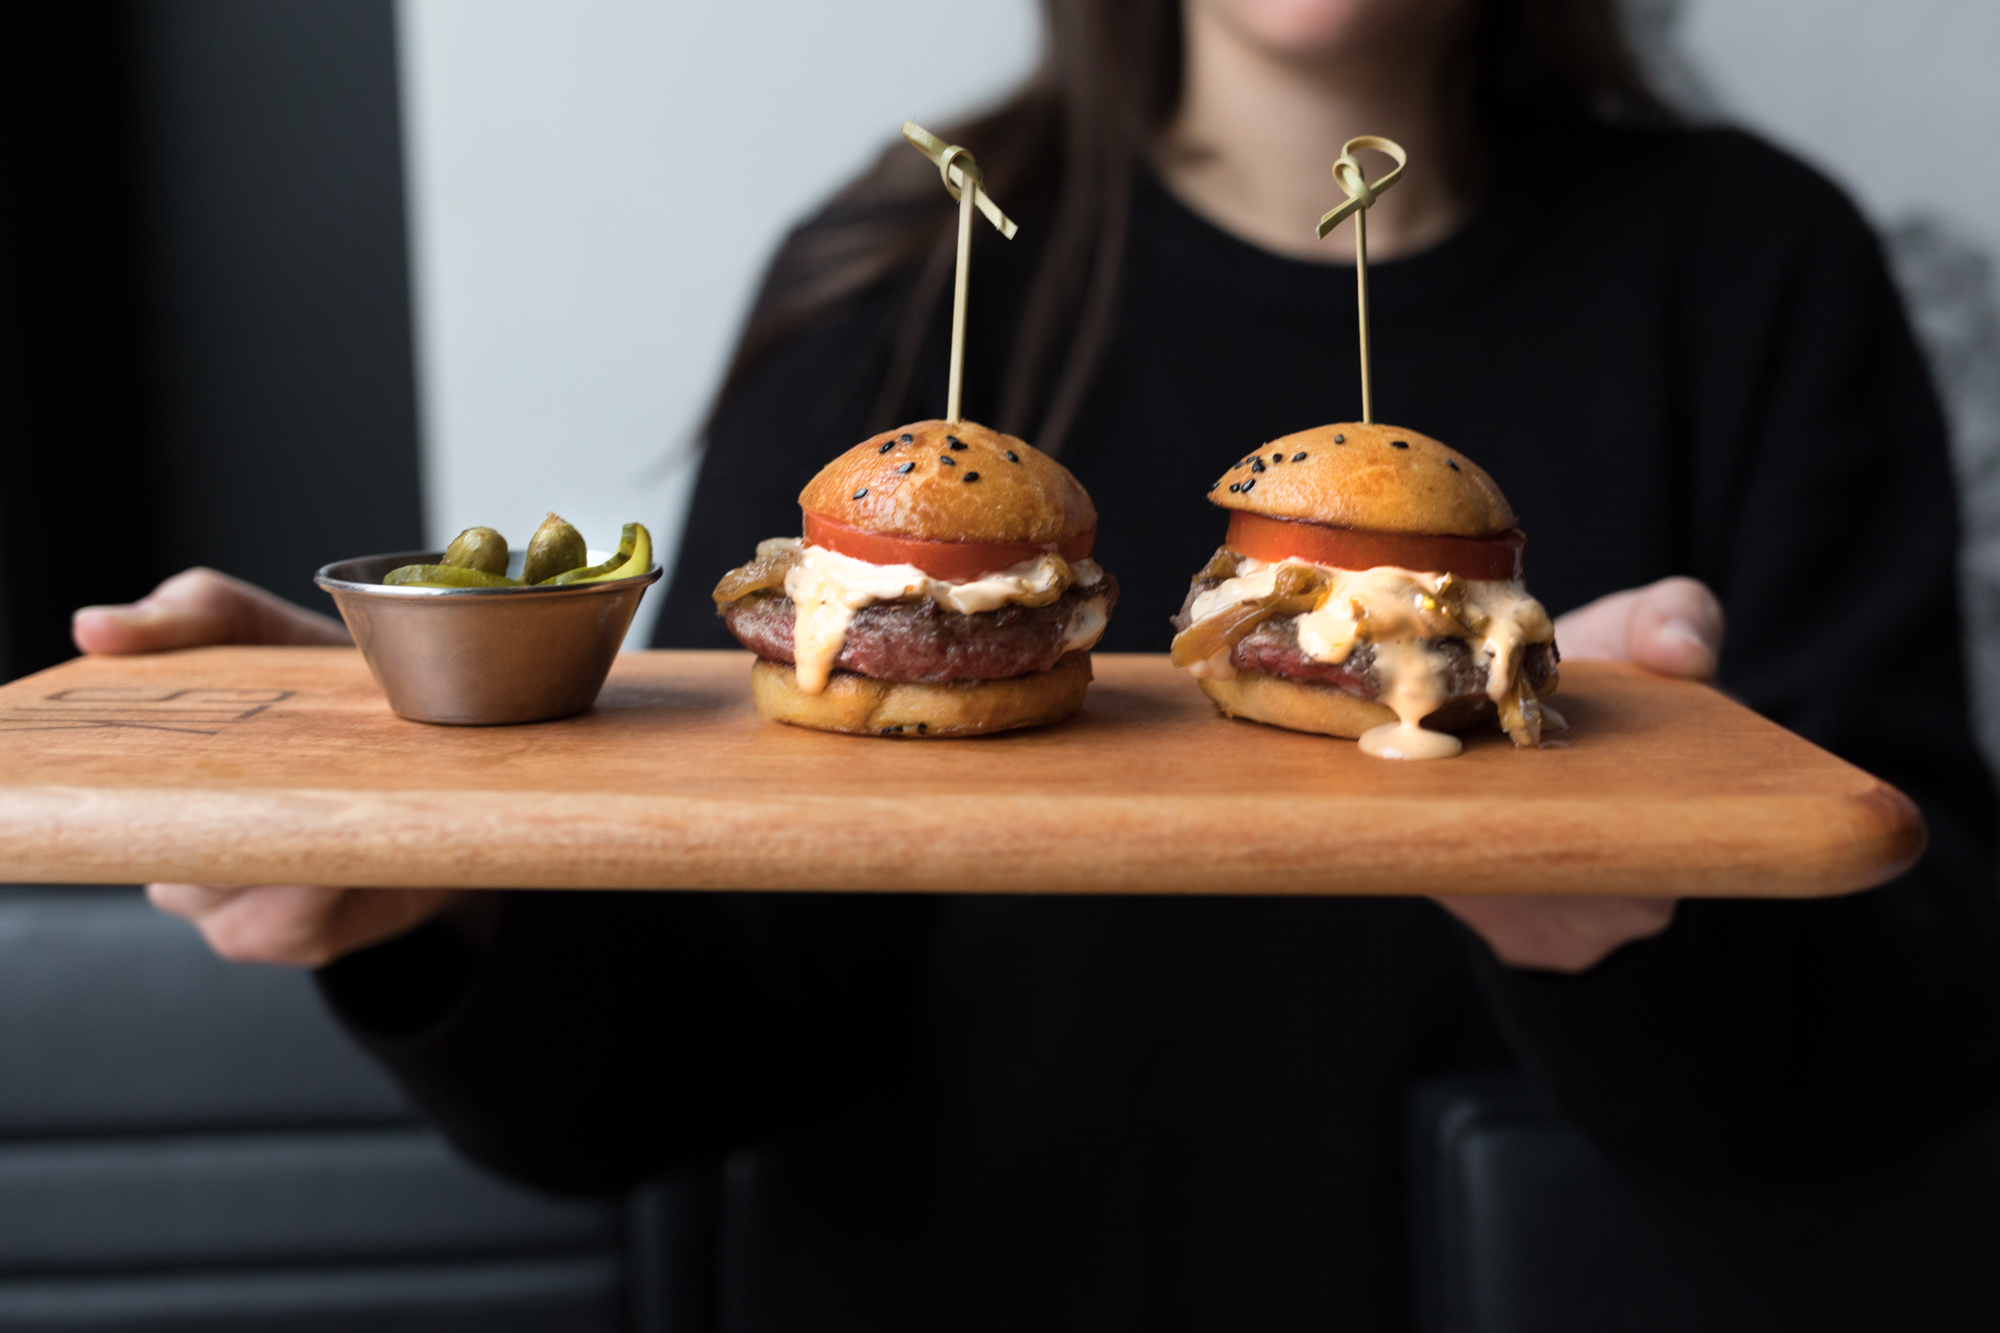 Jimena Peck Denver Lifestyle Food Photographer STK Denver Burgers